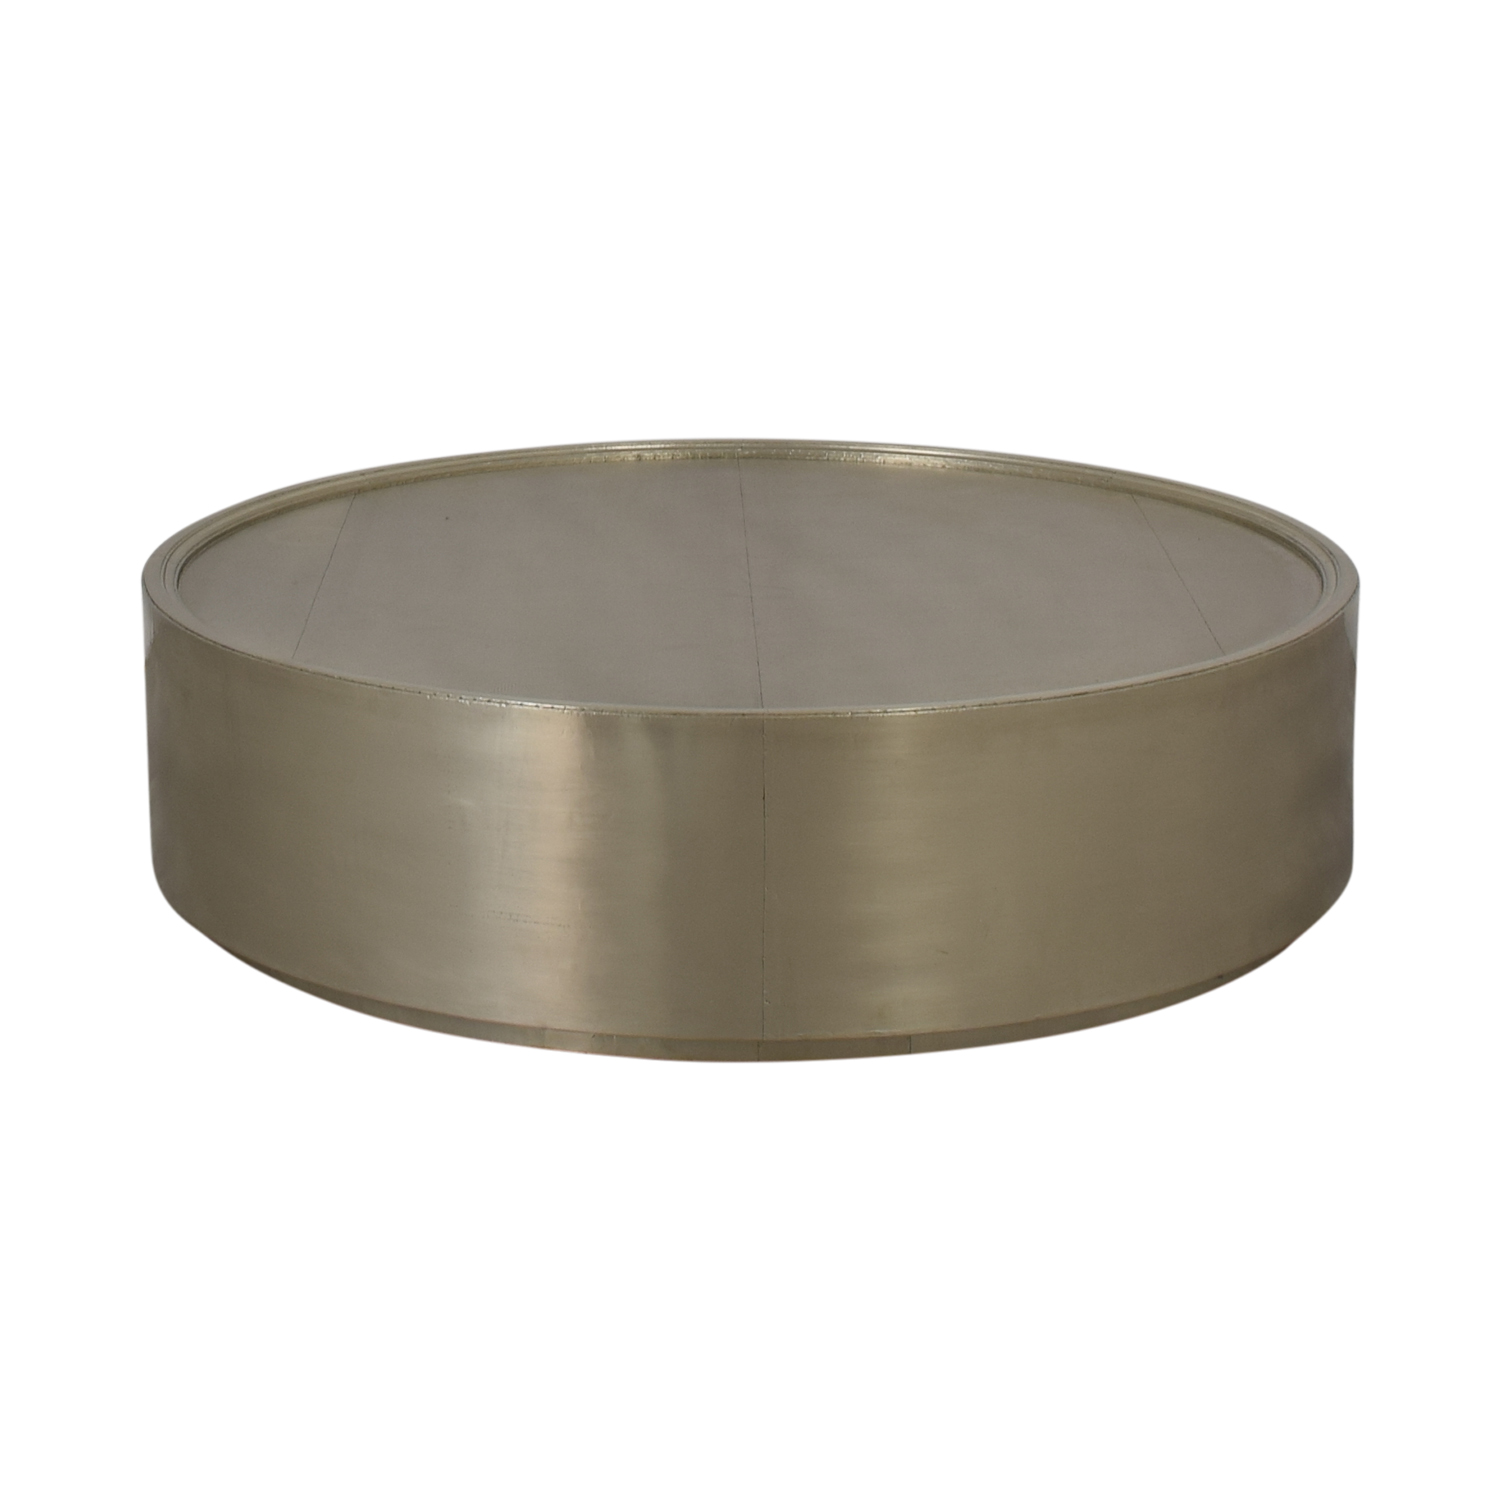 Anthropologie Anthropologie Chrome Round Coffee Table dimensions